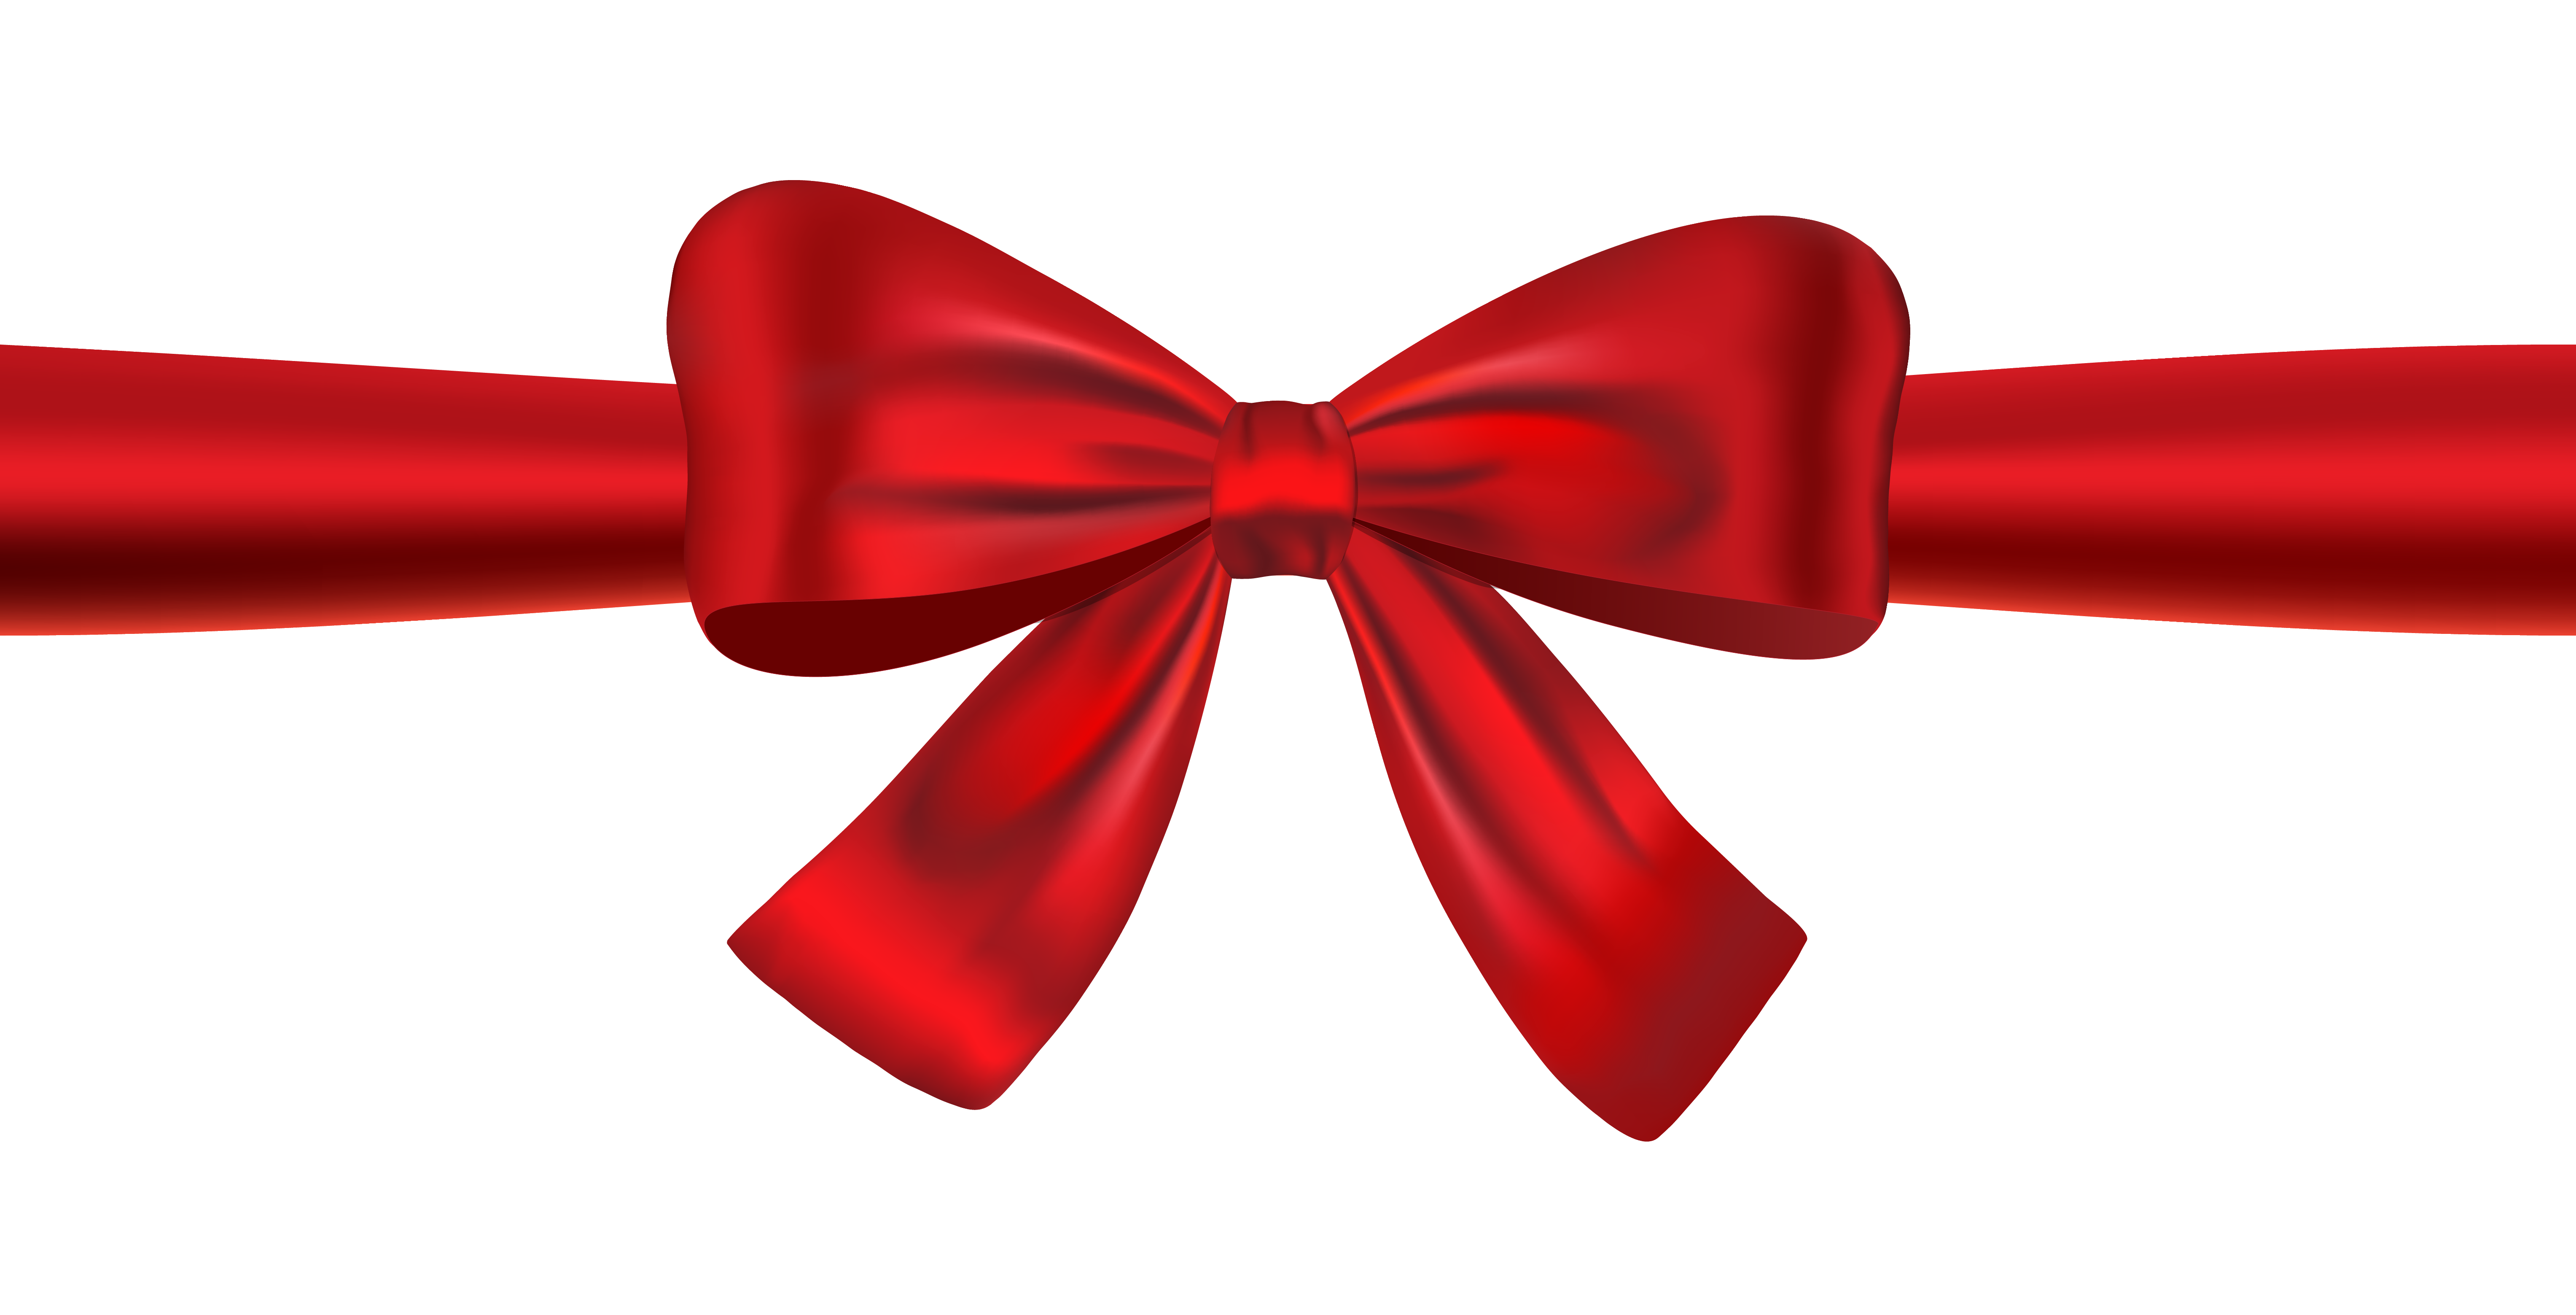 Red Ribbon Bow PNG Transparent Image.